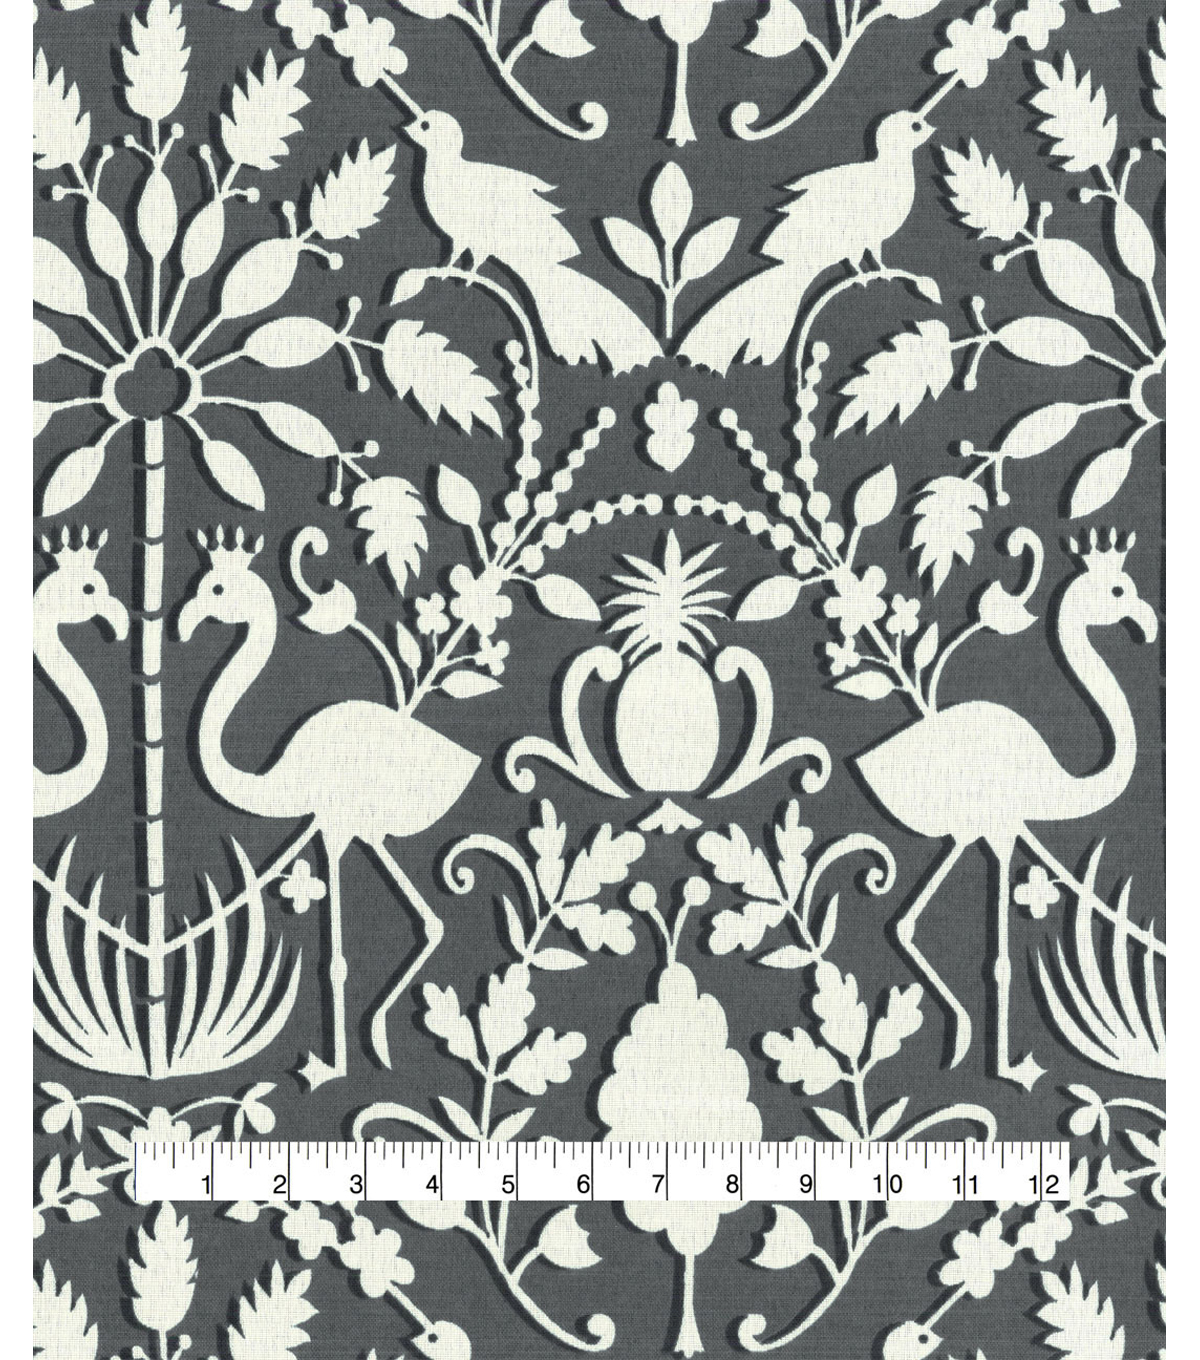 Dena Designs Outdoor Fabric 13x13\u0022 Swatch-Summer Set Licorice